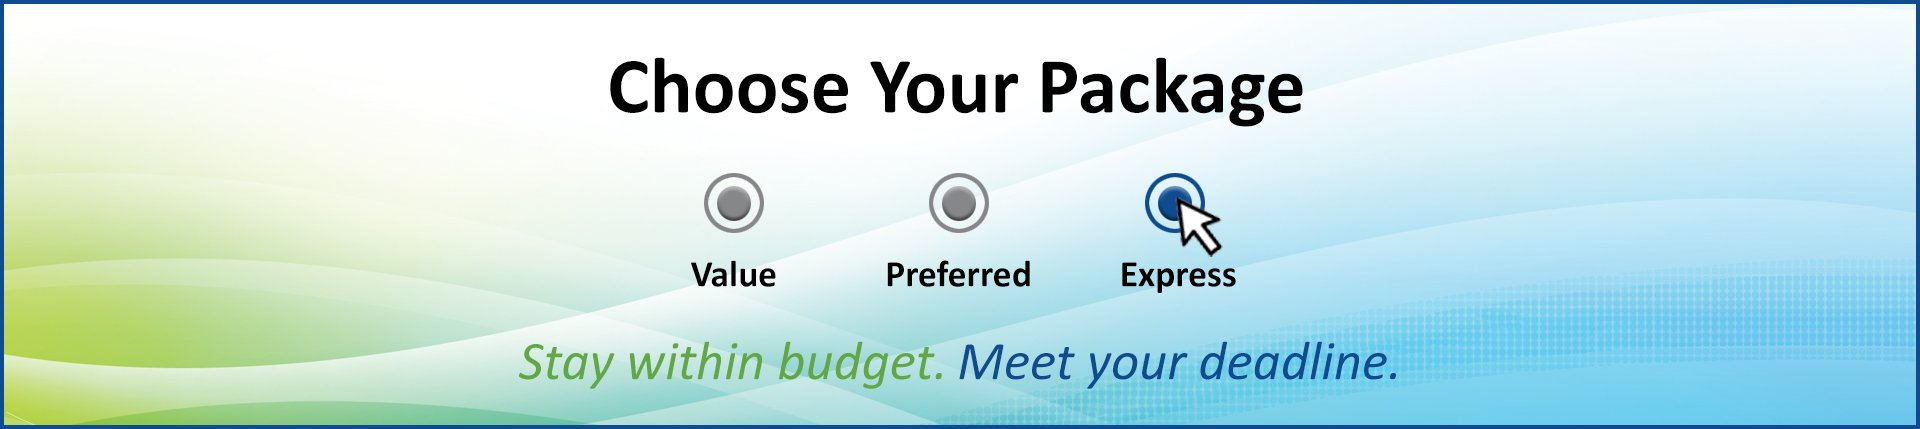 NGS Pick Your Package Banner - Option 2.jpg